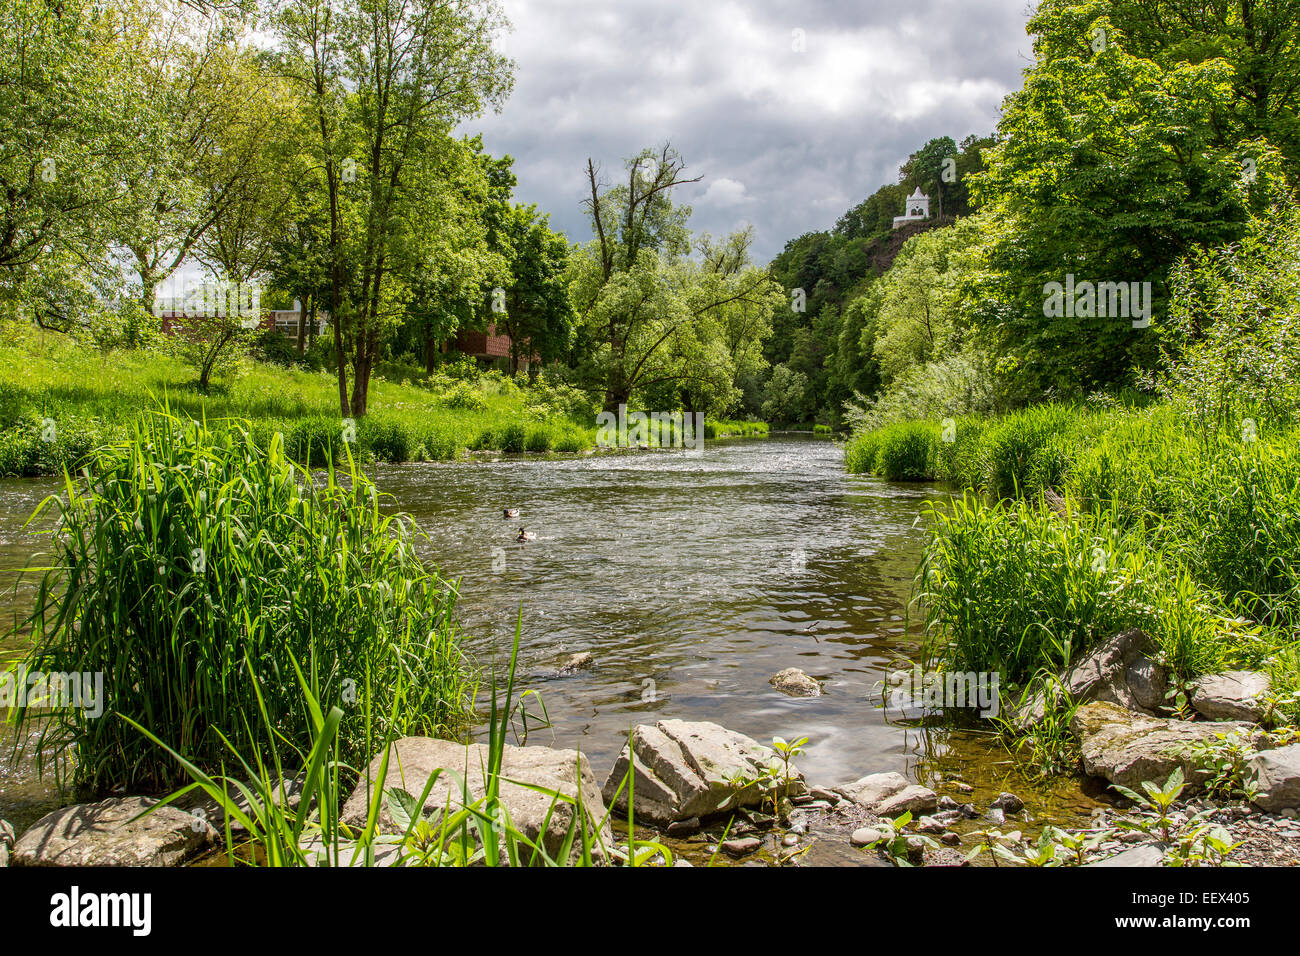 River Ruhr in Arnsberg in Sauerland region, artwork mermaid sculpture in the river Stock Photo